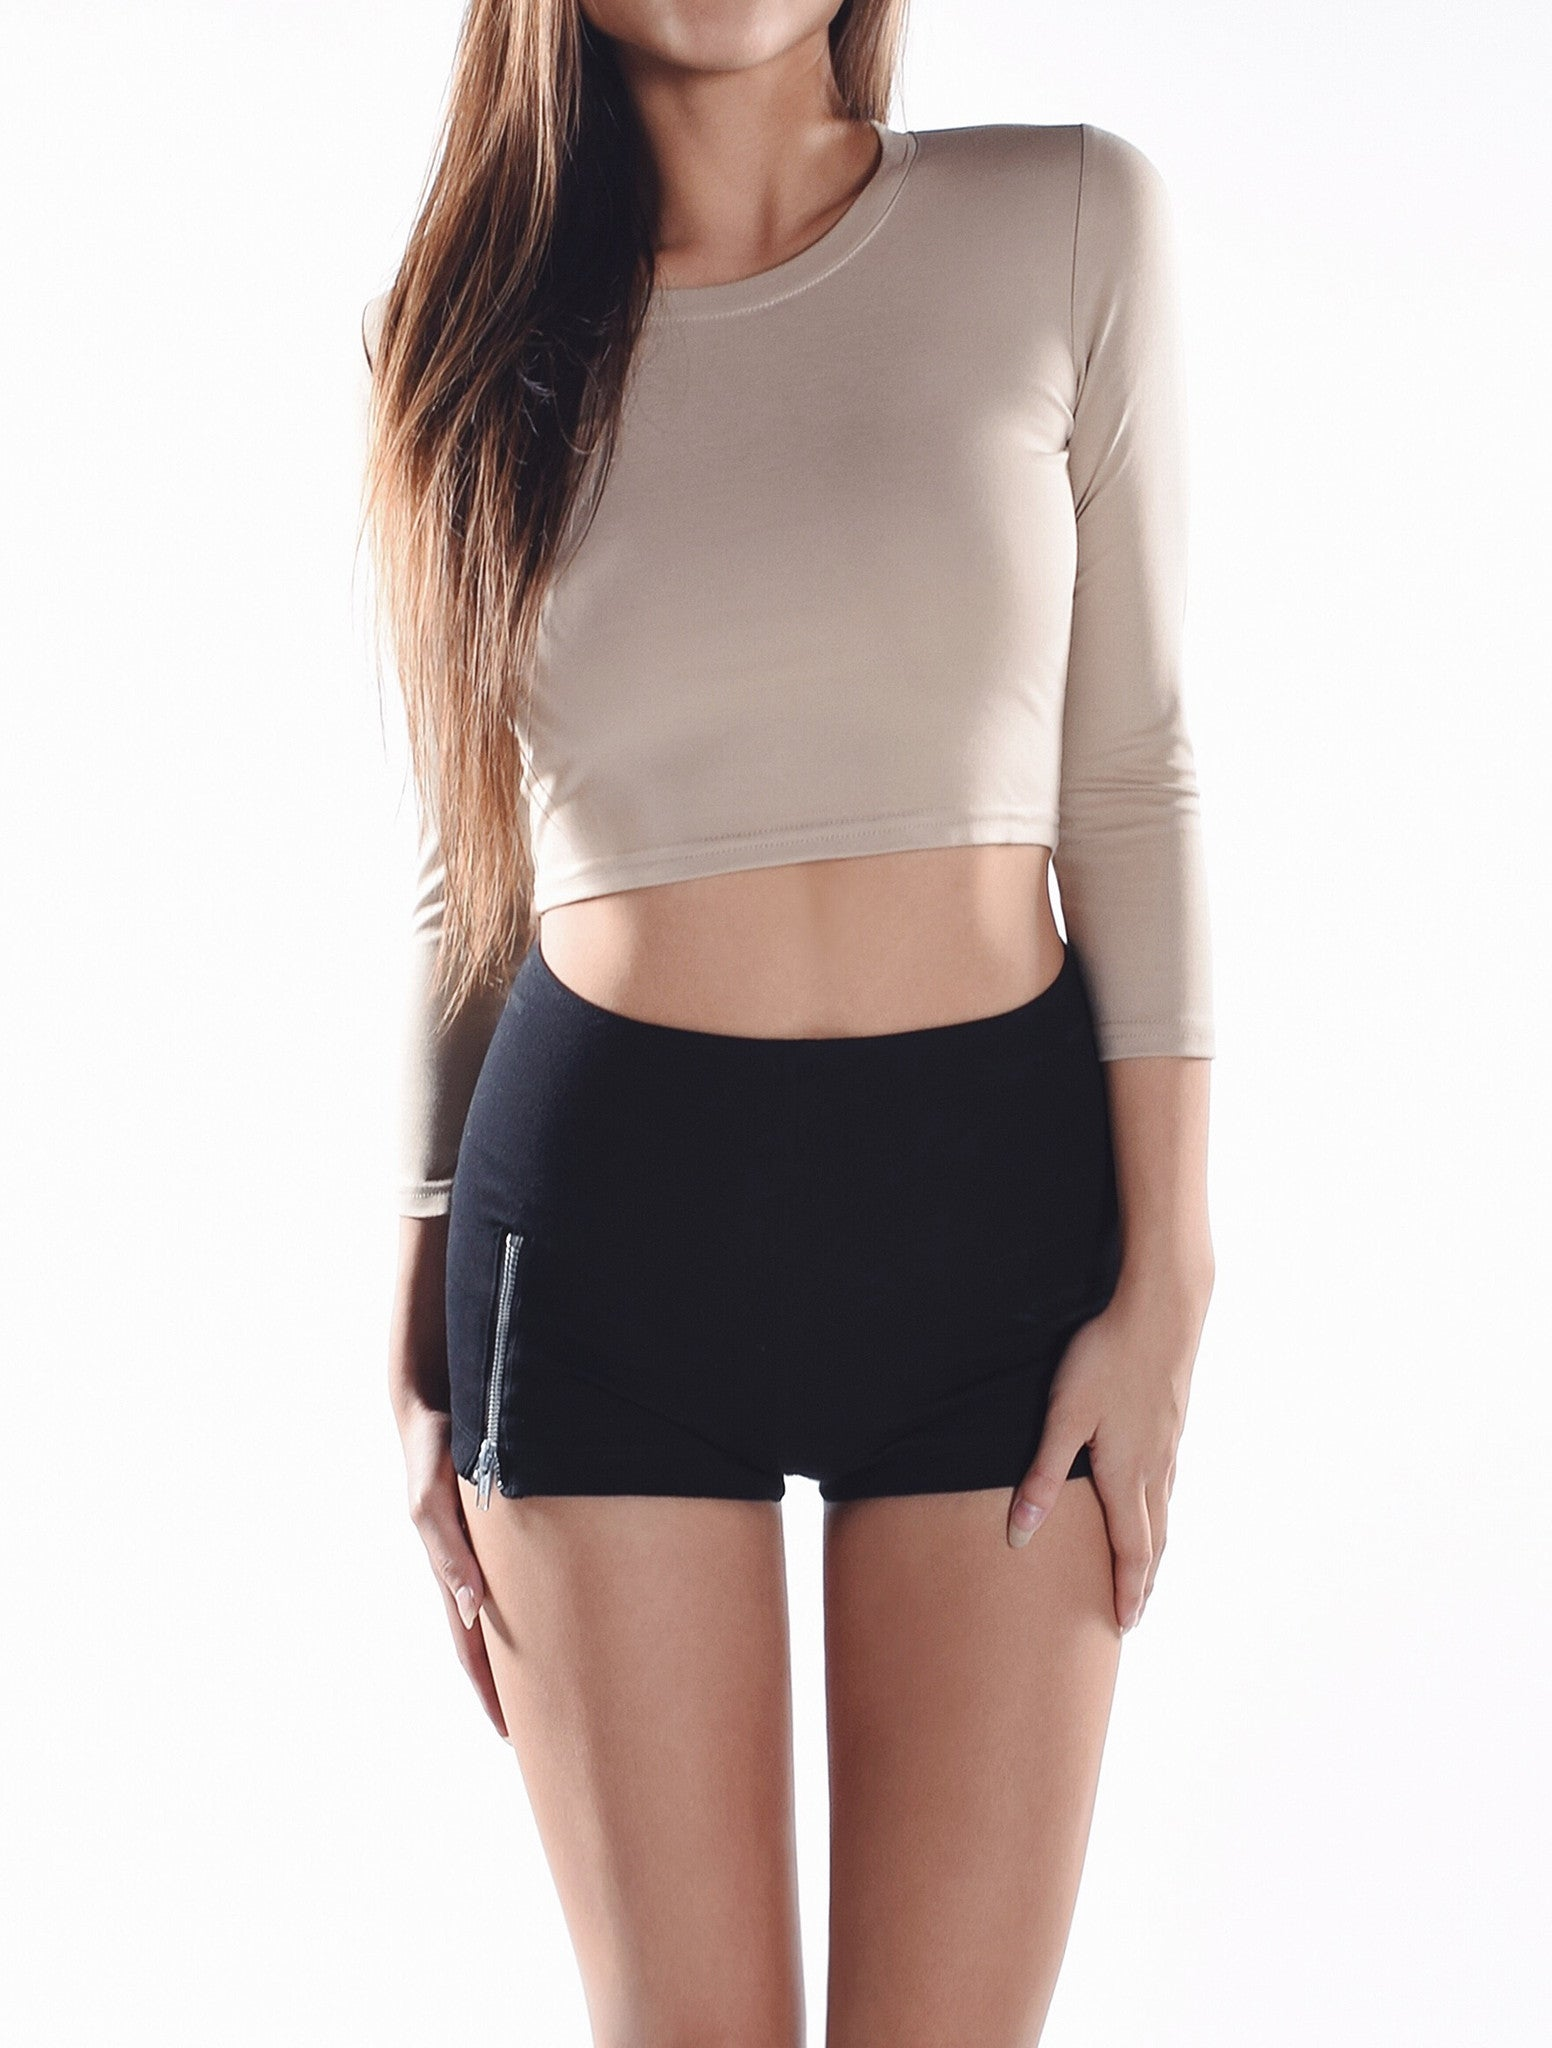 3/4 Sleeve Crop Top - Nude